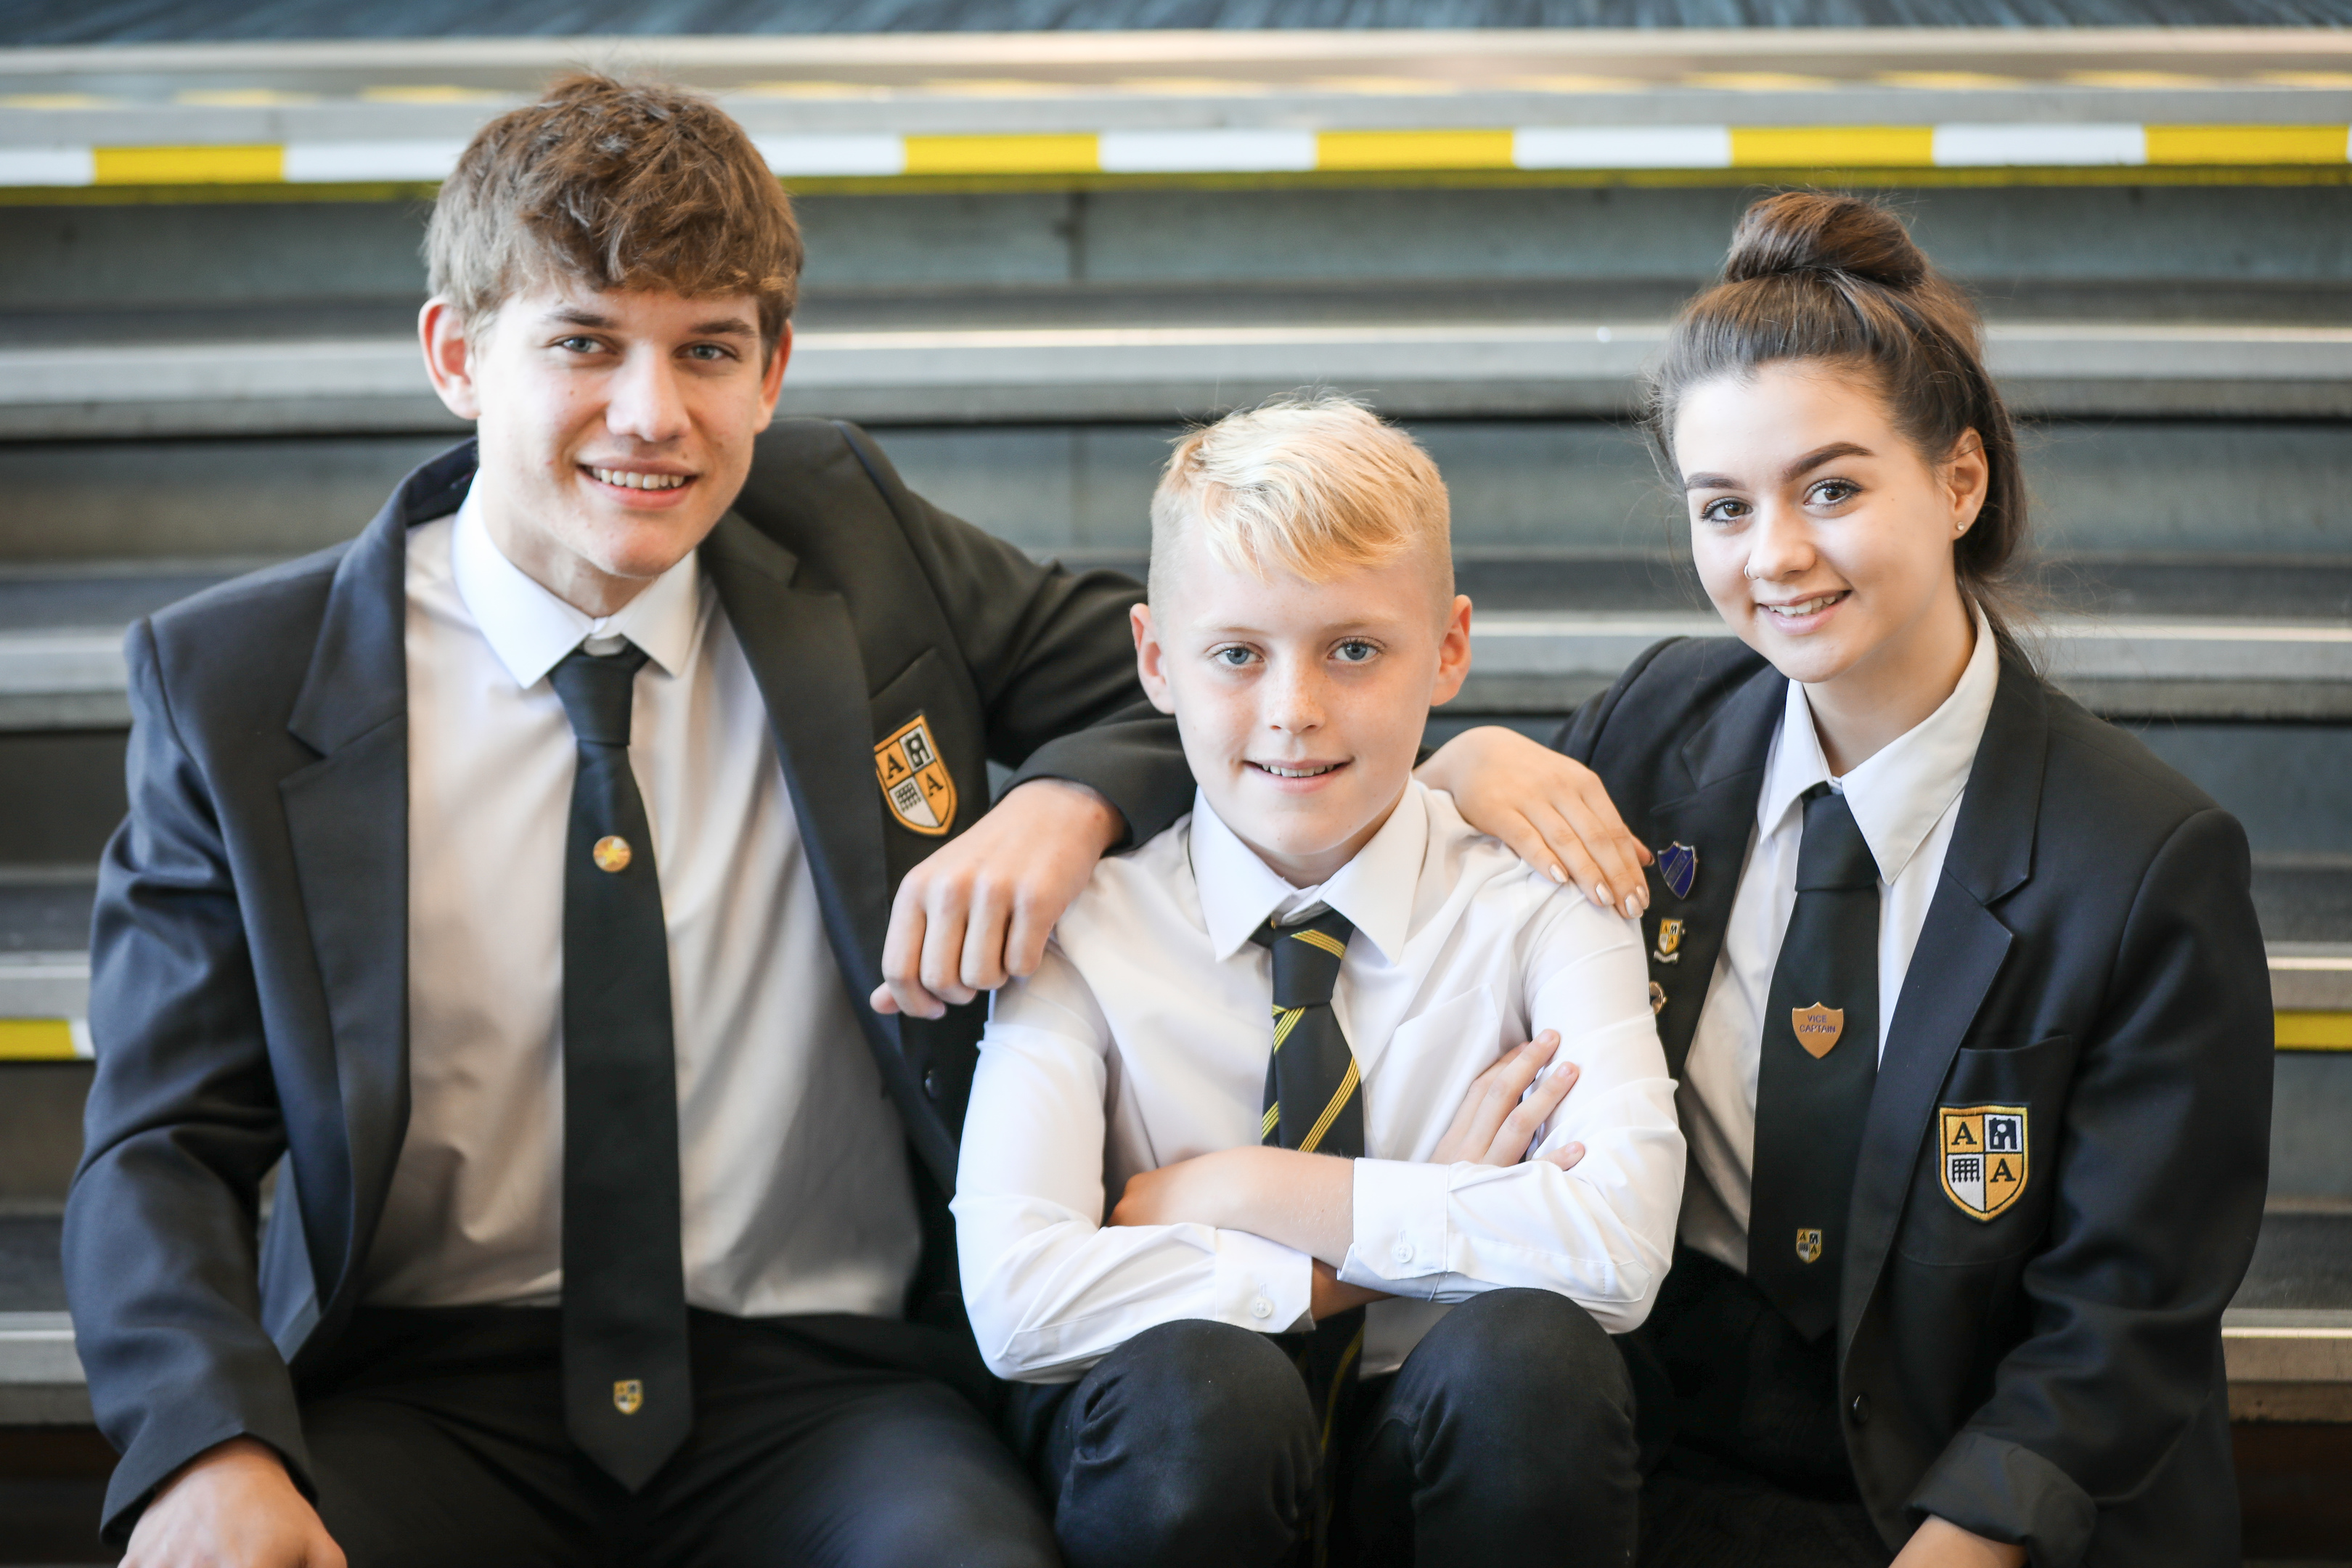 Arbroath Academy pupils Igor Spurek, Rory Cargill and Beth Ritchie are working on the mentoring programme.